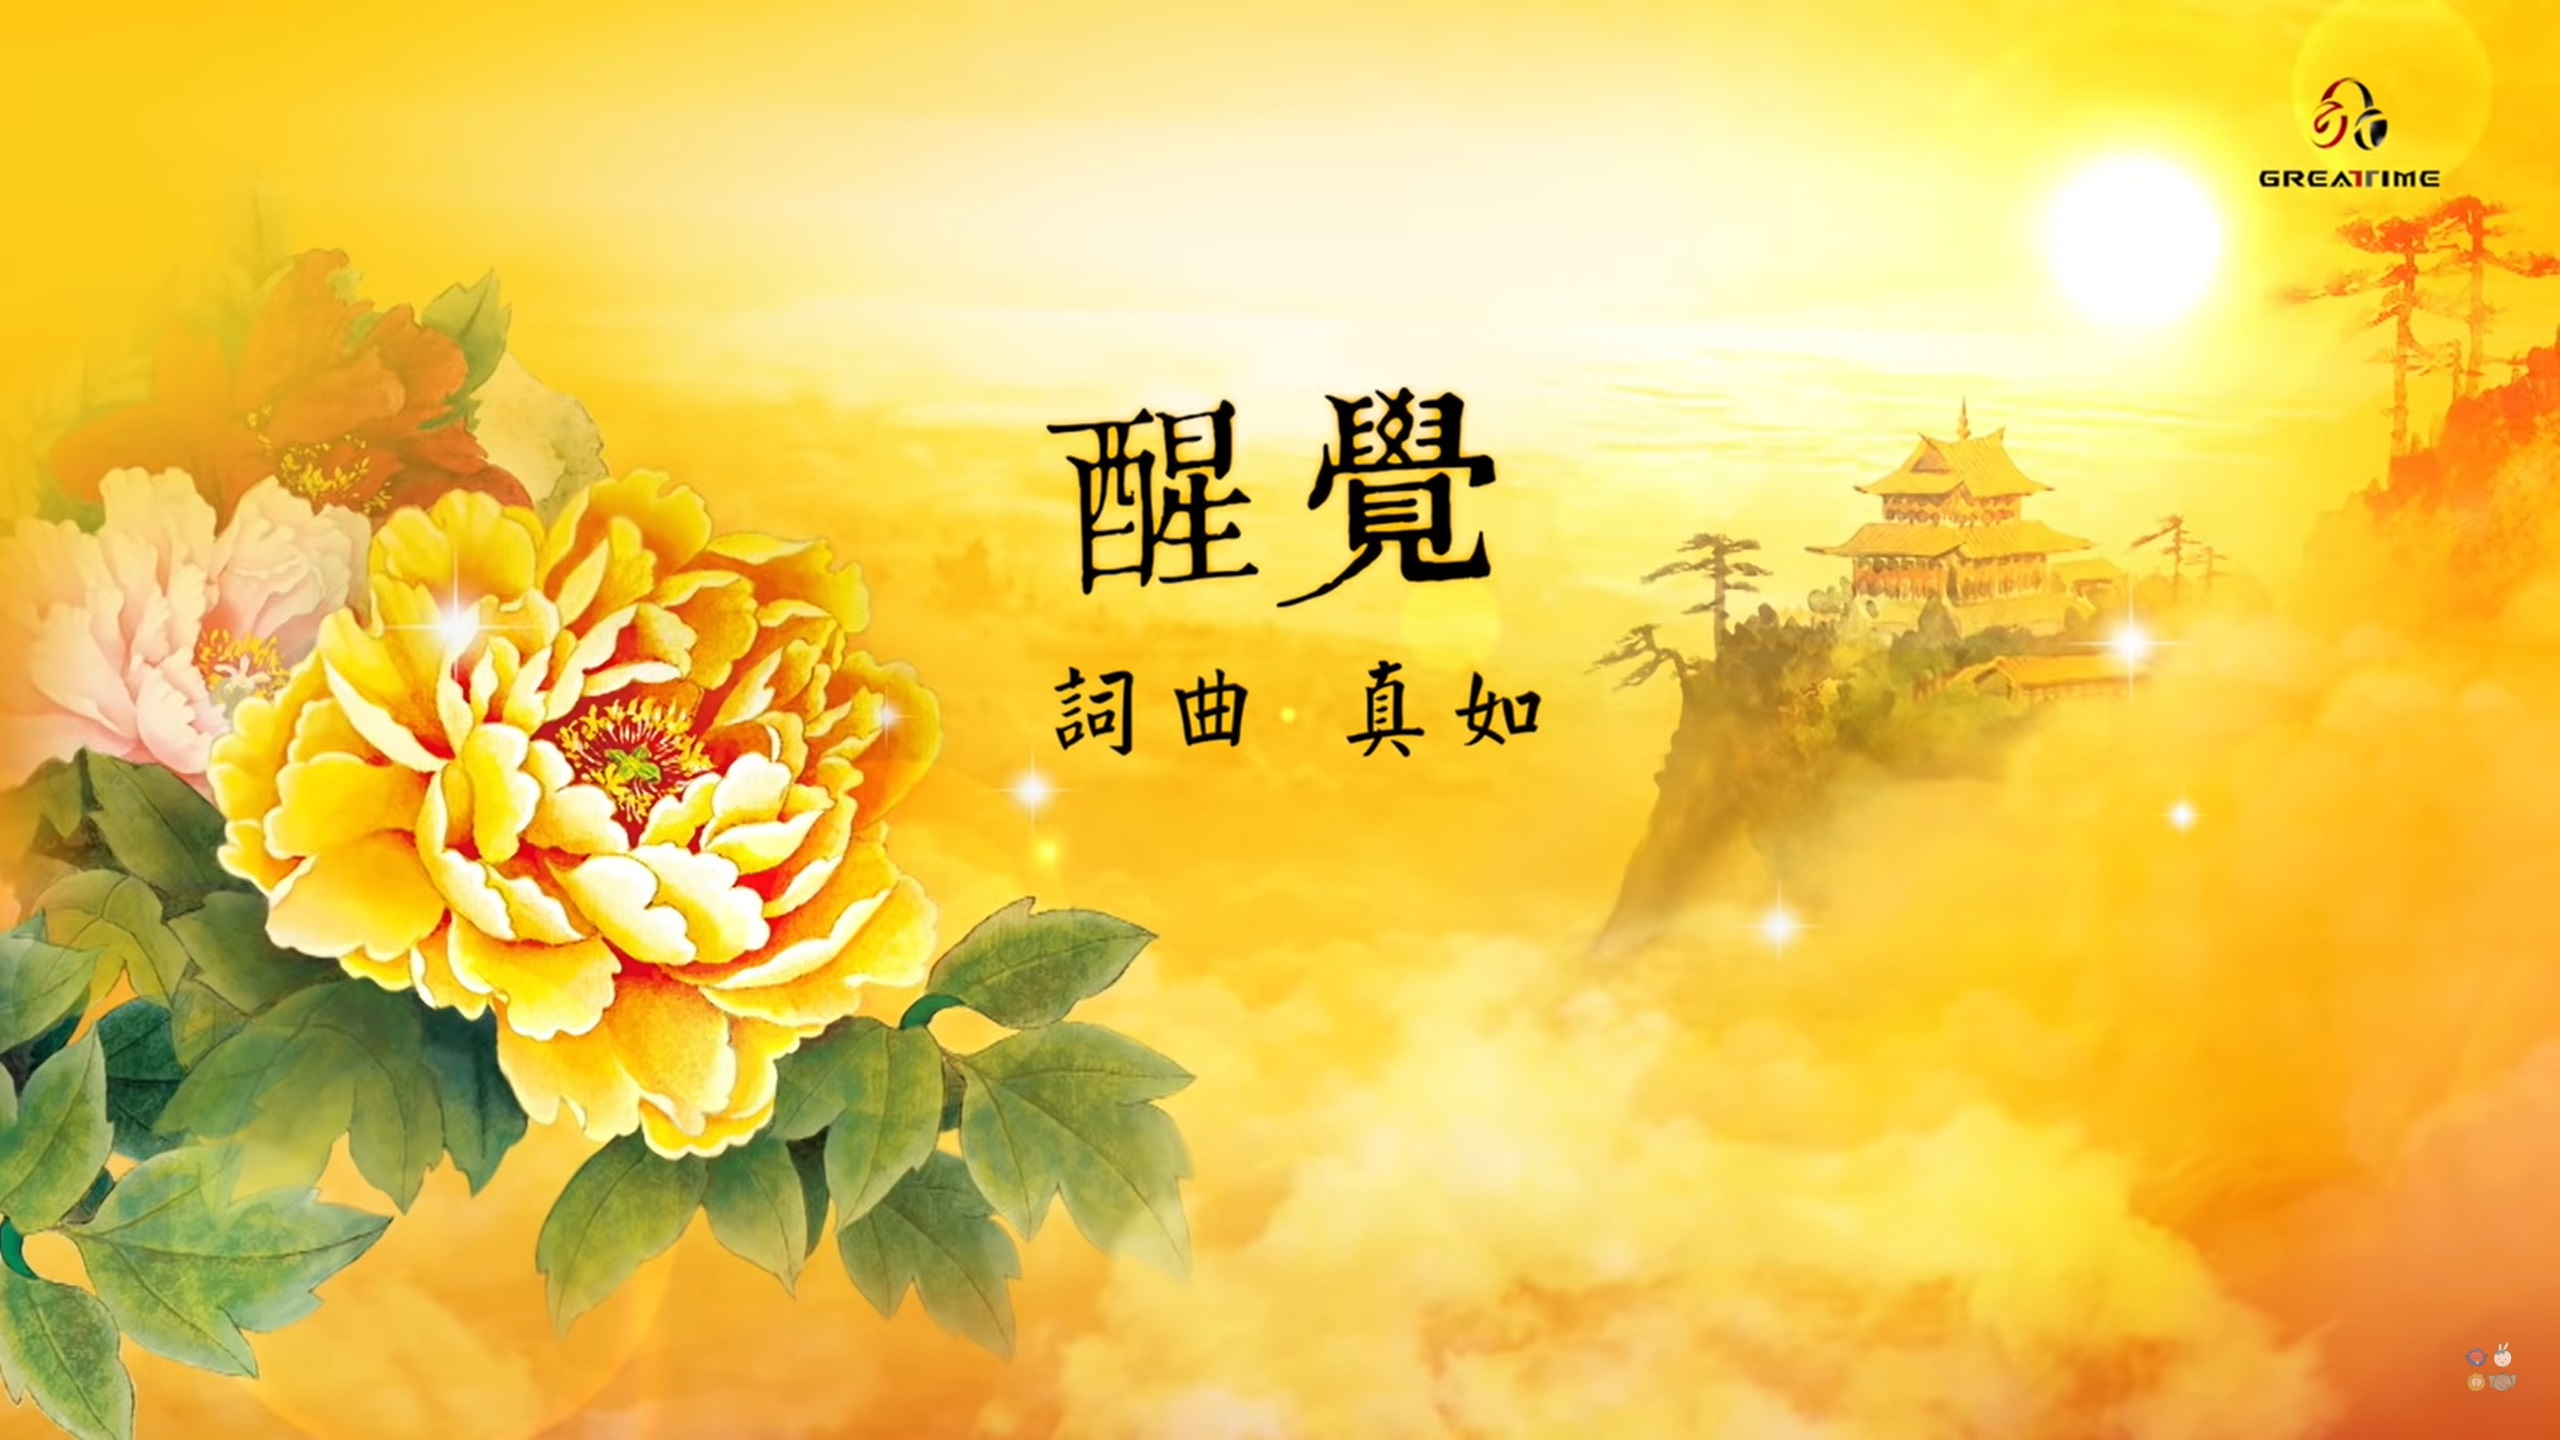 HEARTSTRINGS OF PRAISE:《在這個時候:祝福您》IN THIS MOMENT: A GIFT OF MELODY 24.09.2020